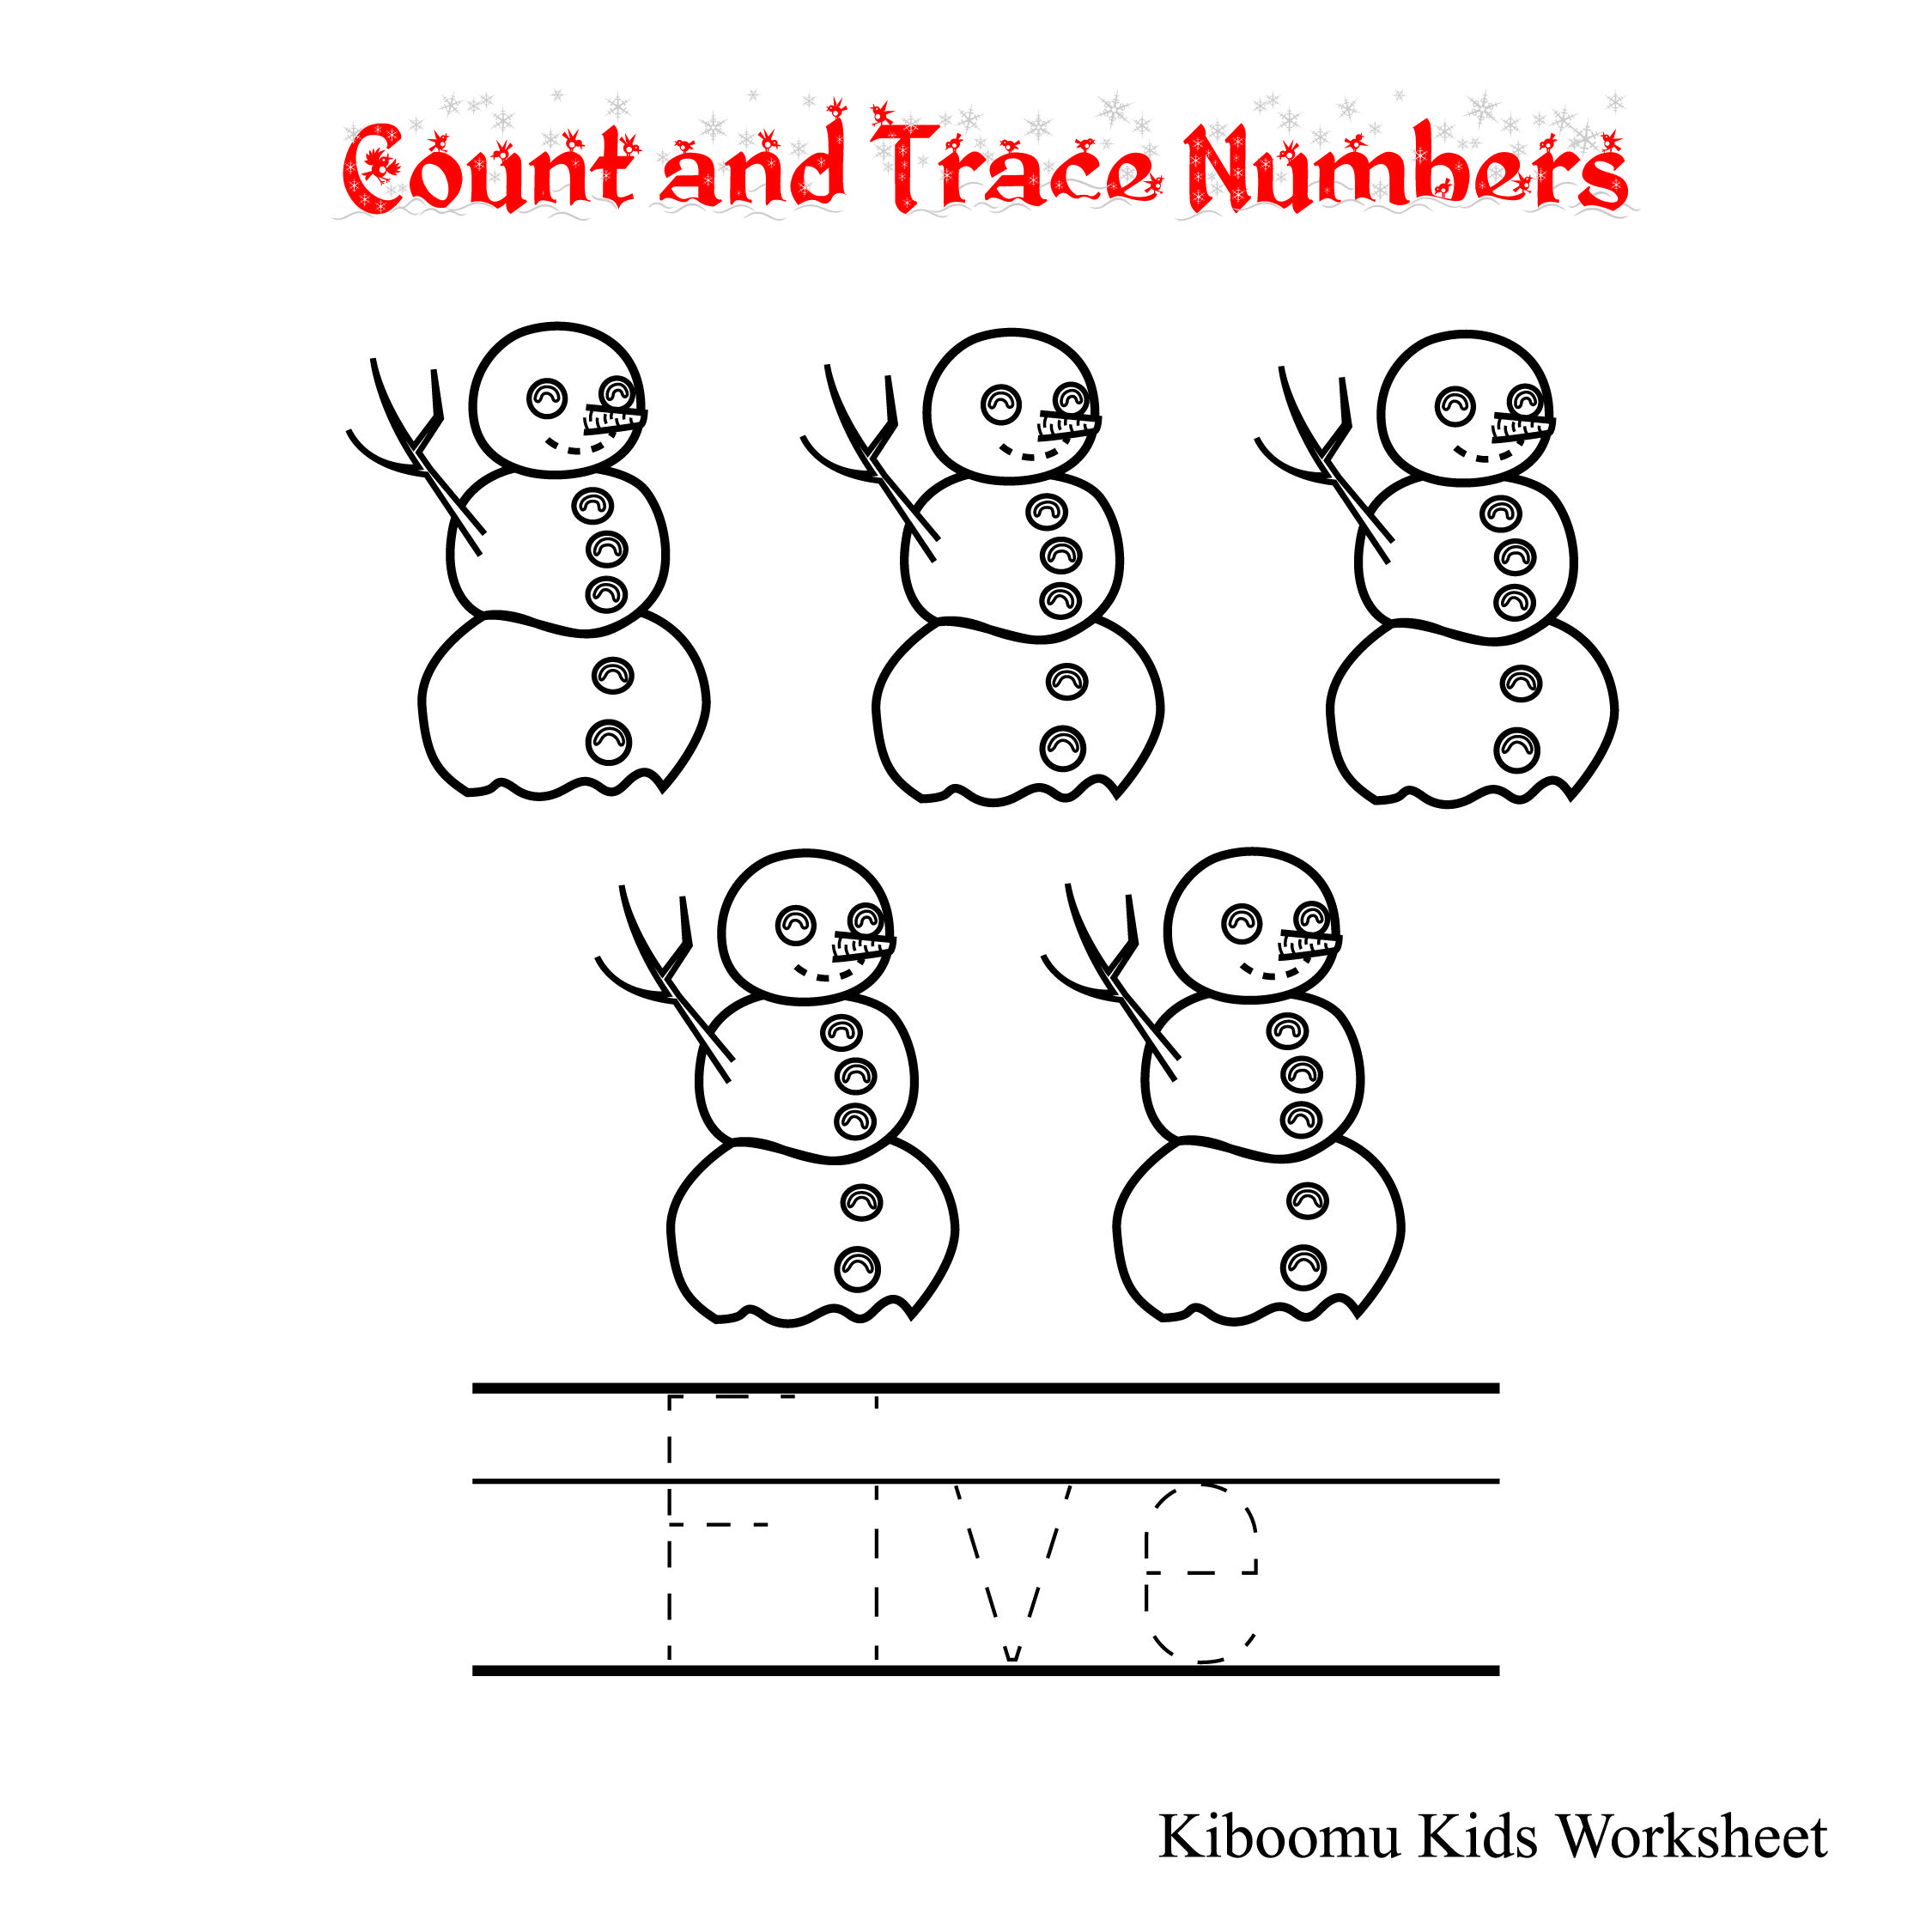 Count And Trace Number Five Worksheet And Counting Song